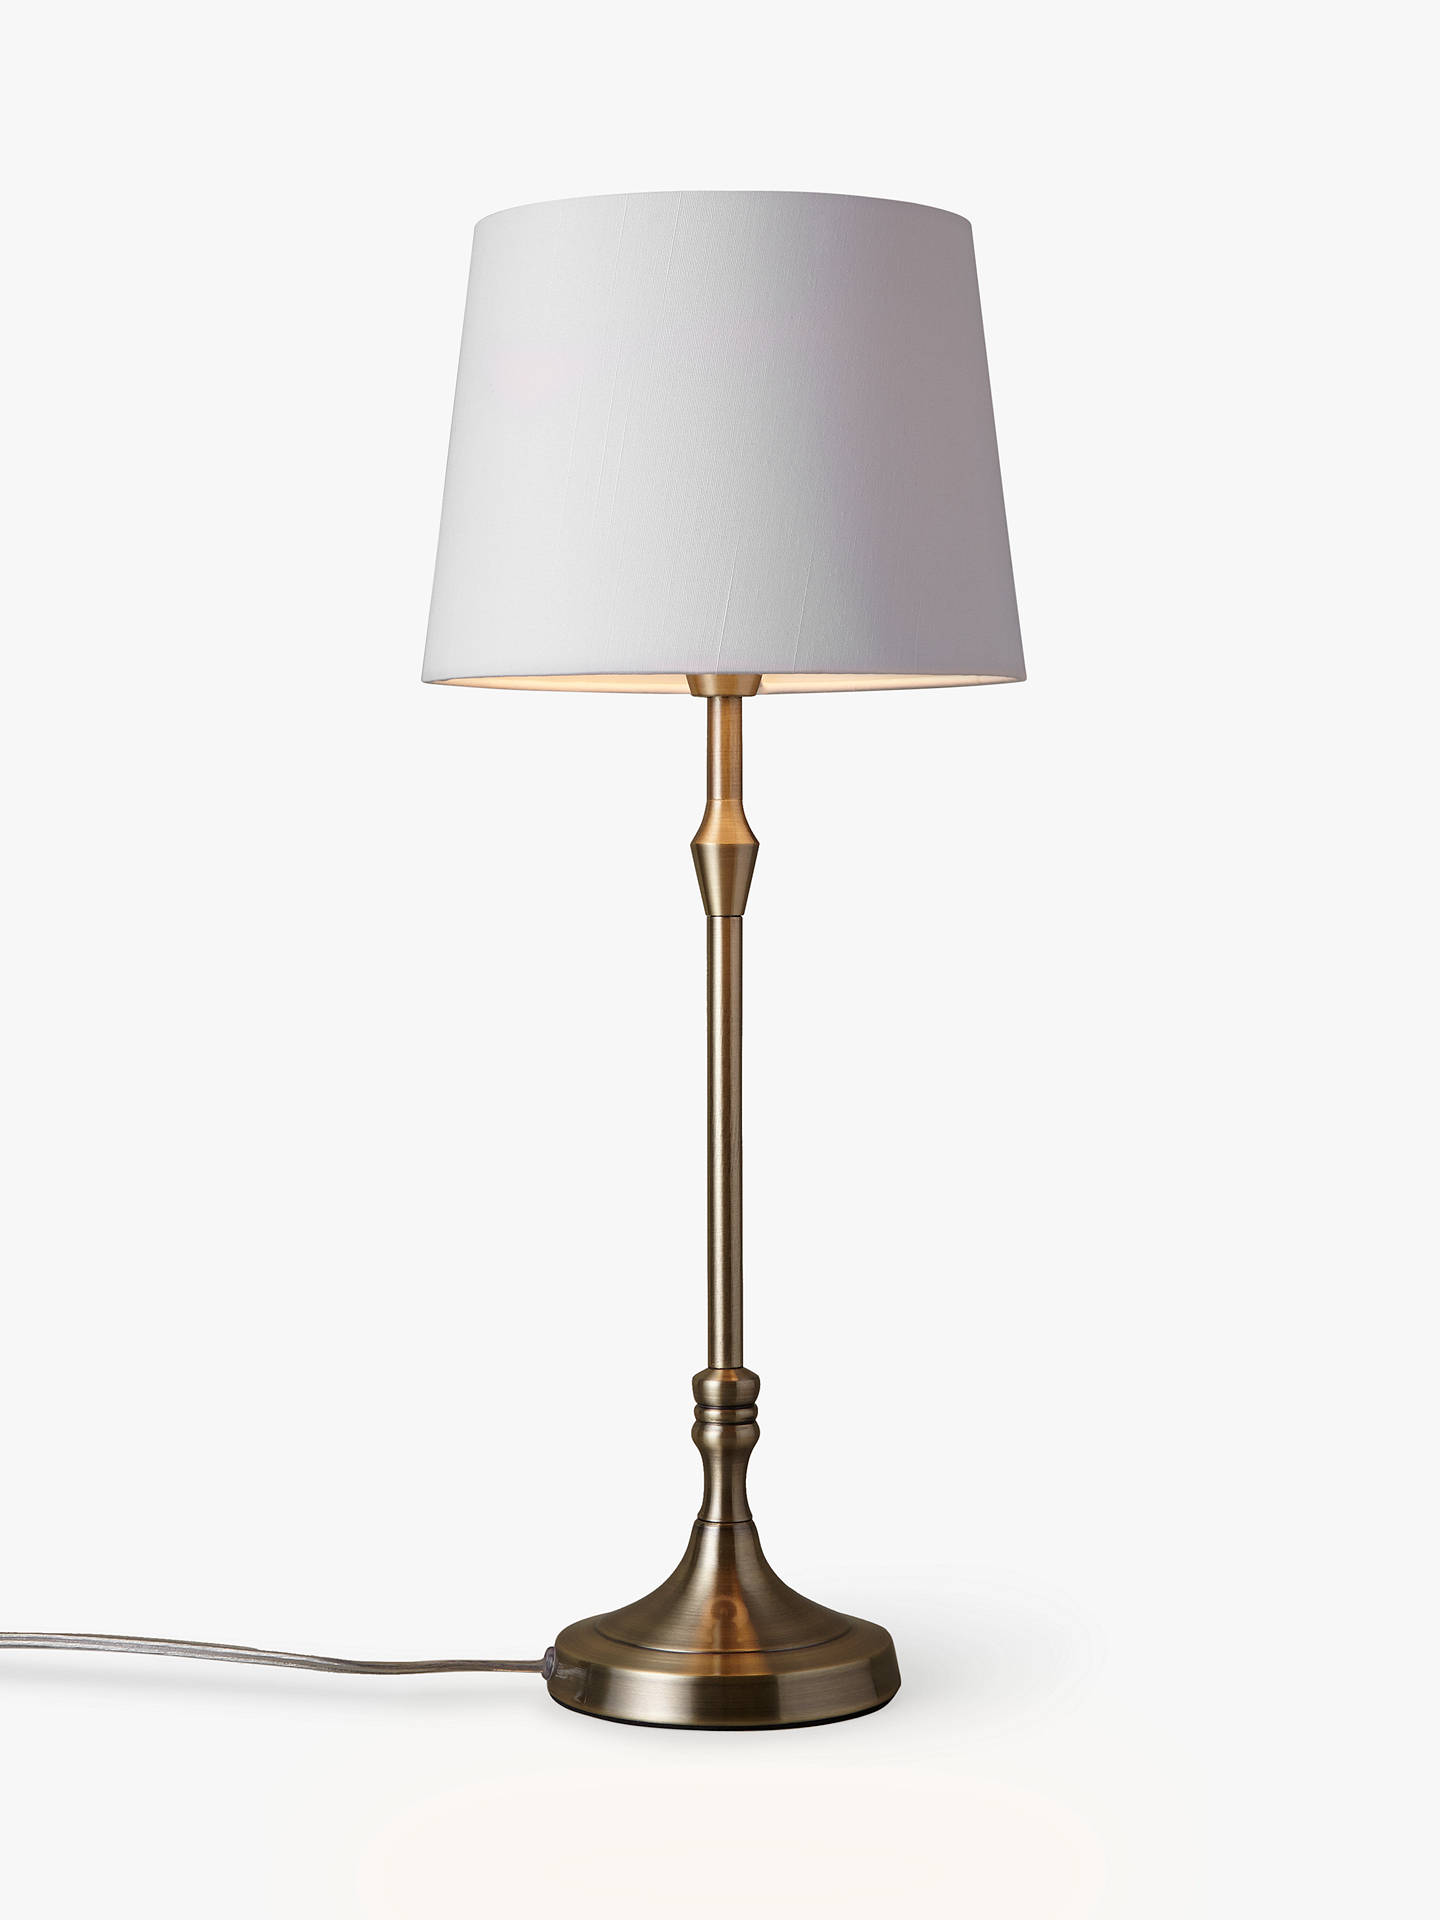 BuyJohn Lewis & Partners Cleo Turned Candlestick Table Lamp, Antique Brass Online at johnlewis.com